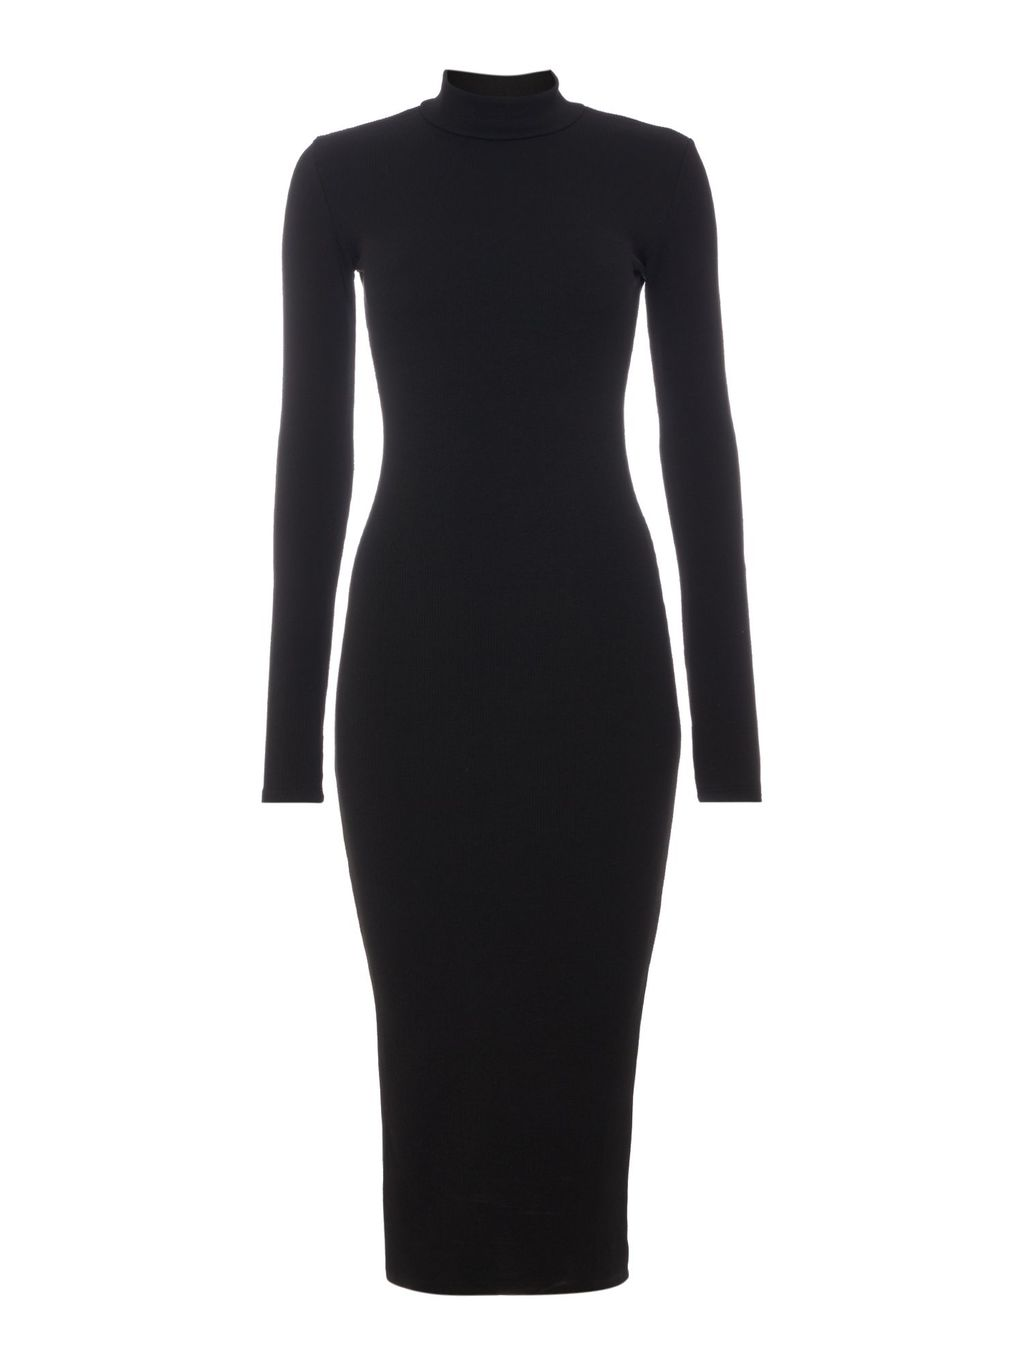 Long Sleeved High Neck Bodycon Mini Dress, Black - length: below the knee; fit: tight; pattern: plain; neckline: high neck; style: bodycon; predominant colour: black; occasions: evening; fibres: polyester/polyamide - stretch; sleeve length: long sleeve; sleeve style: standard; texture group: jersey - clingy; pattern type: fabric; season: a/w 2015; wardrobe: event